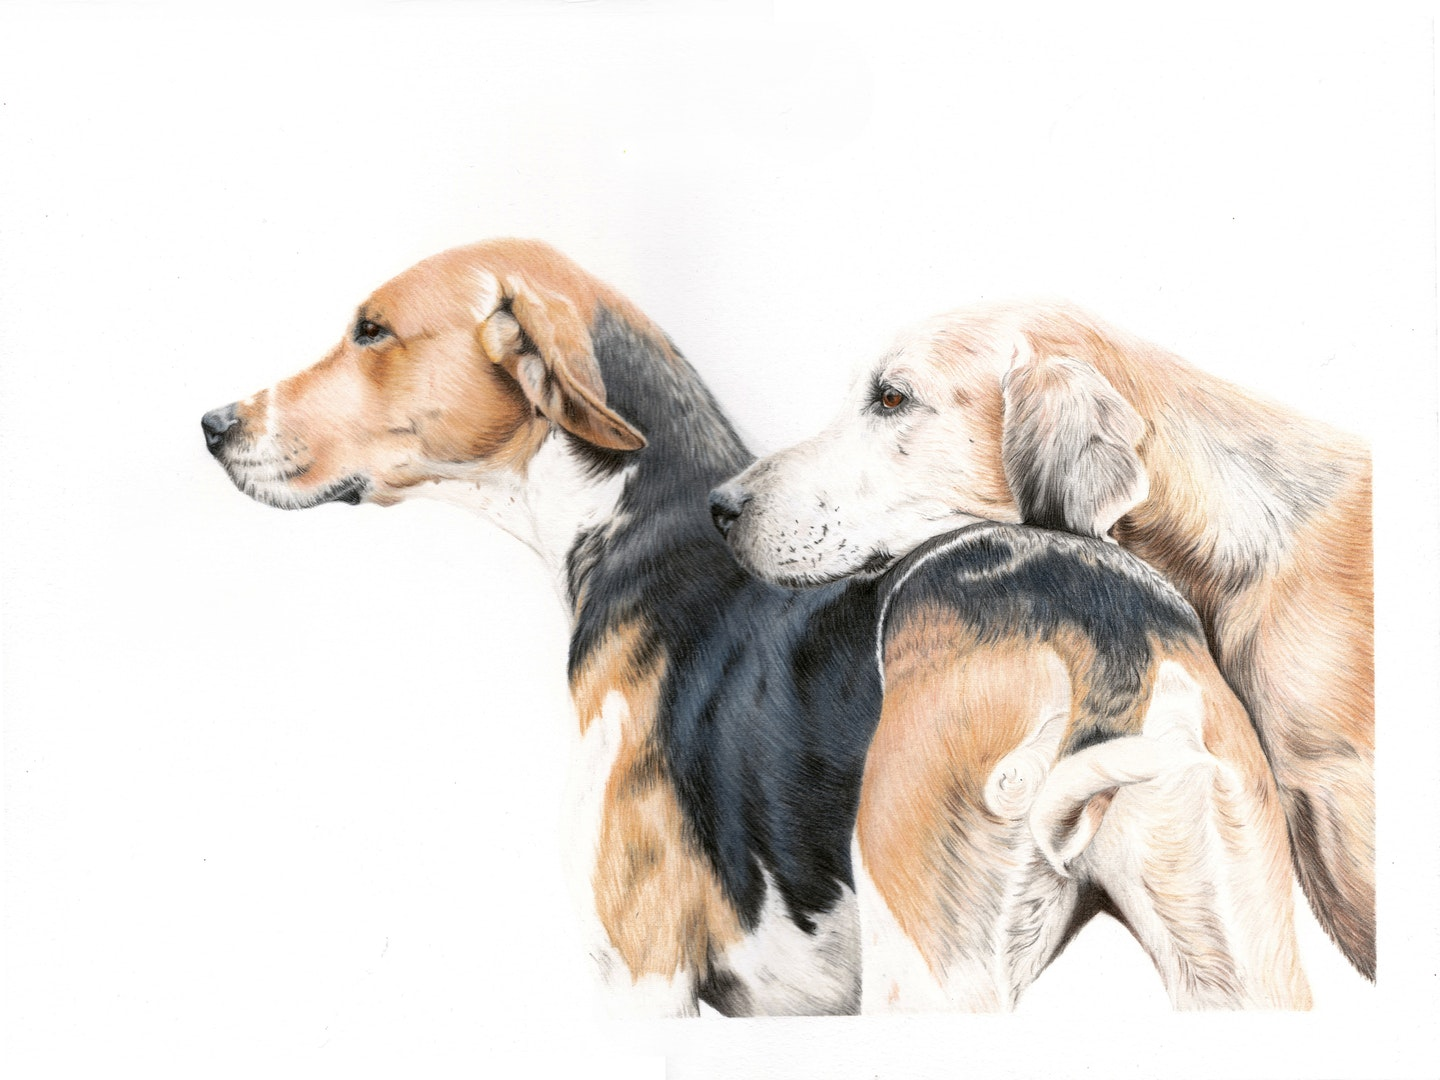 Victoria Randall  Got Your Back  Coloured pencils, 30 x 40 cm  http://www.victoriarandall-fineart.co.uk